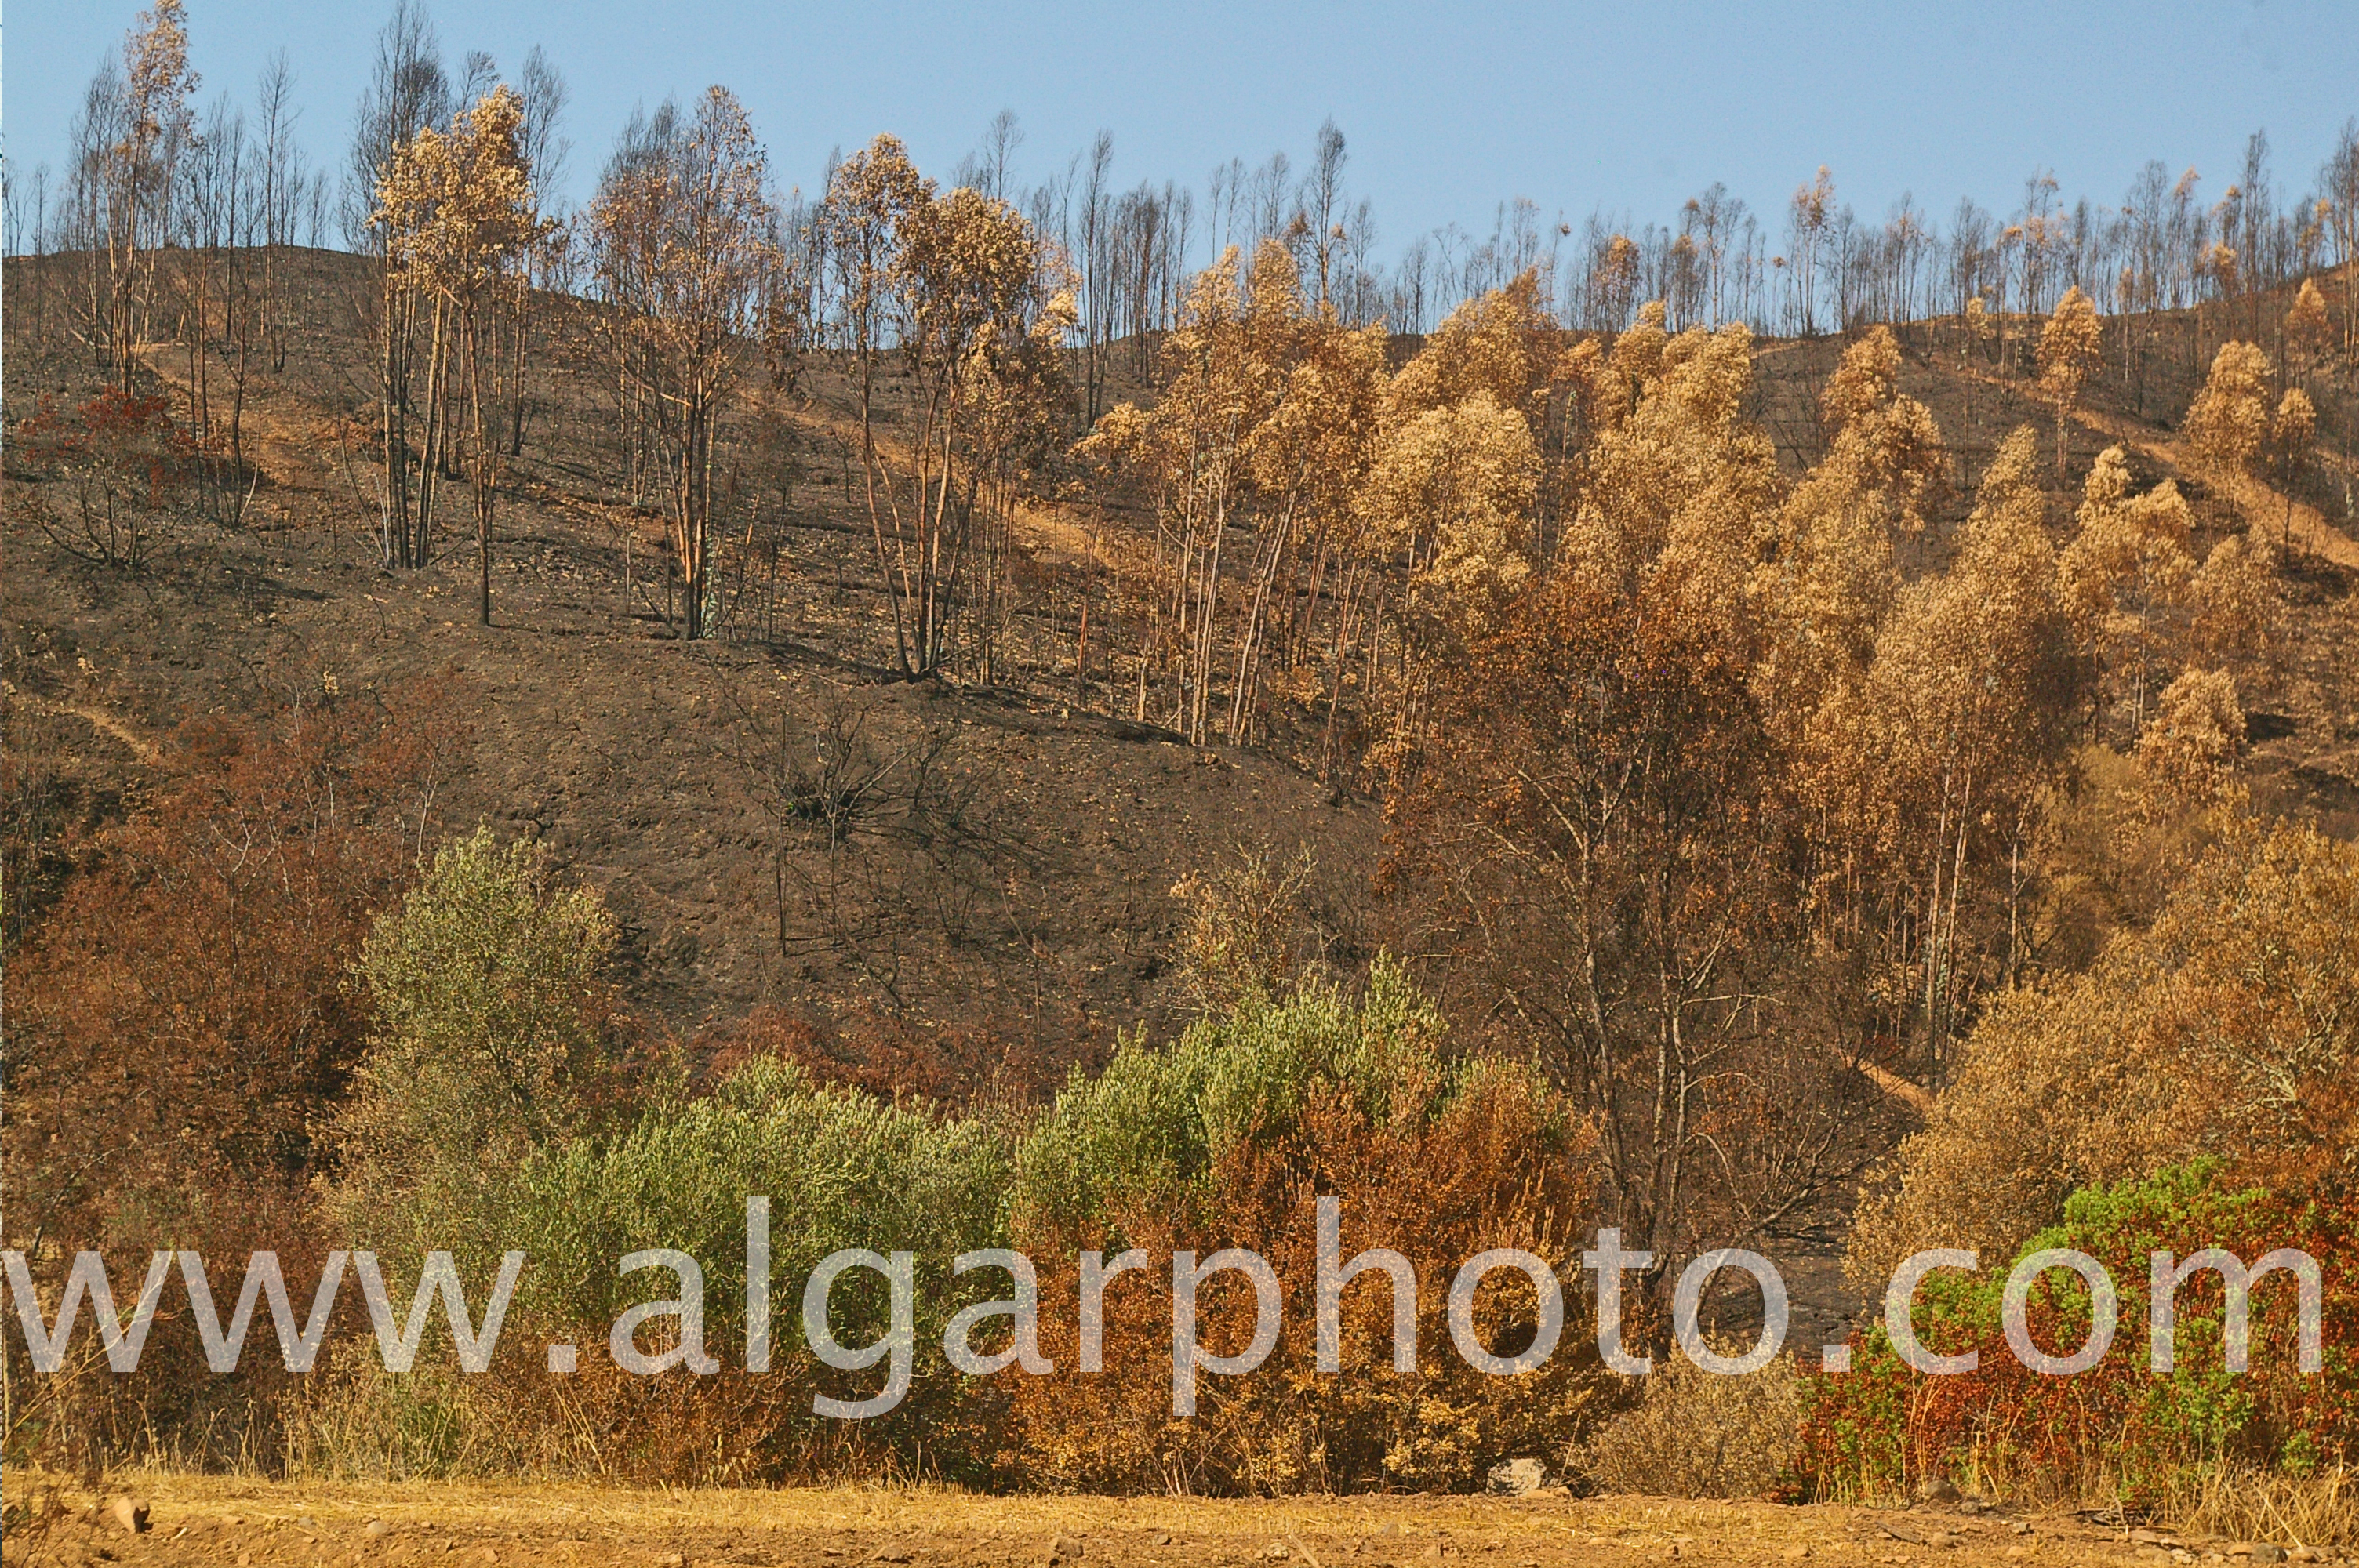 Hillsides ravaged by fire along the N266 road near Rasmalho, Monchique, Algarve, Portugal